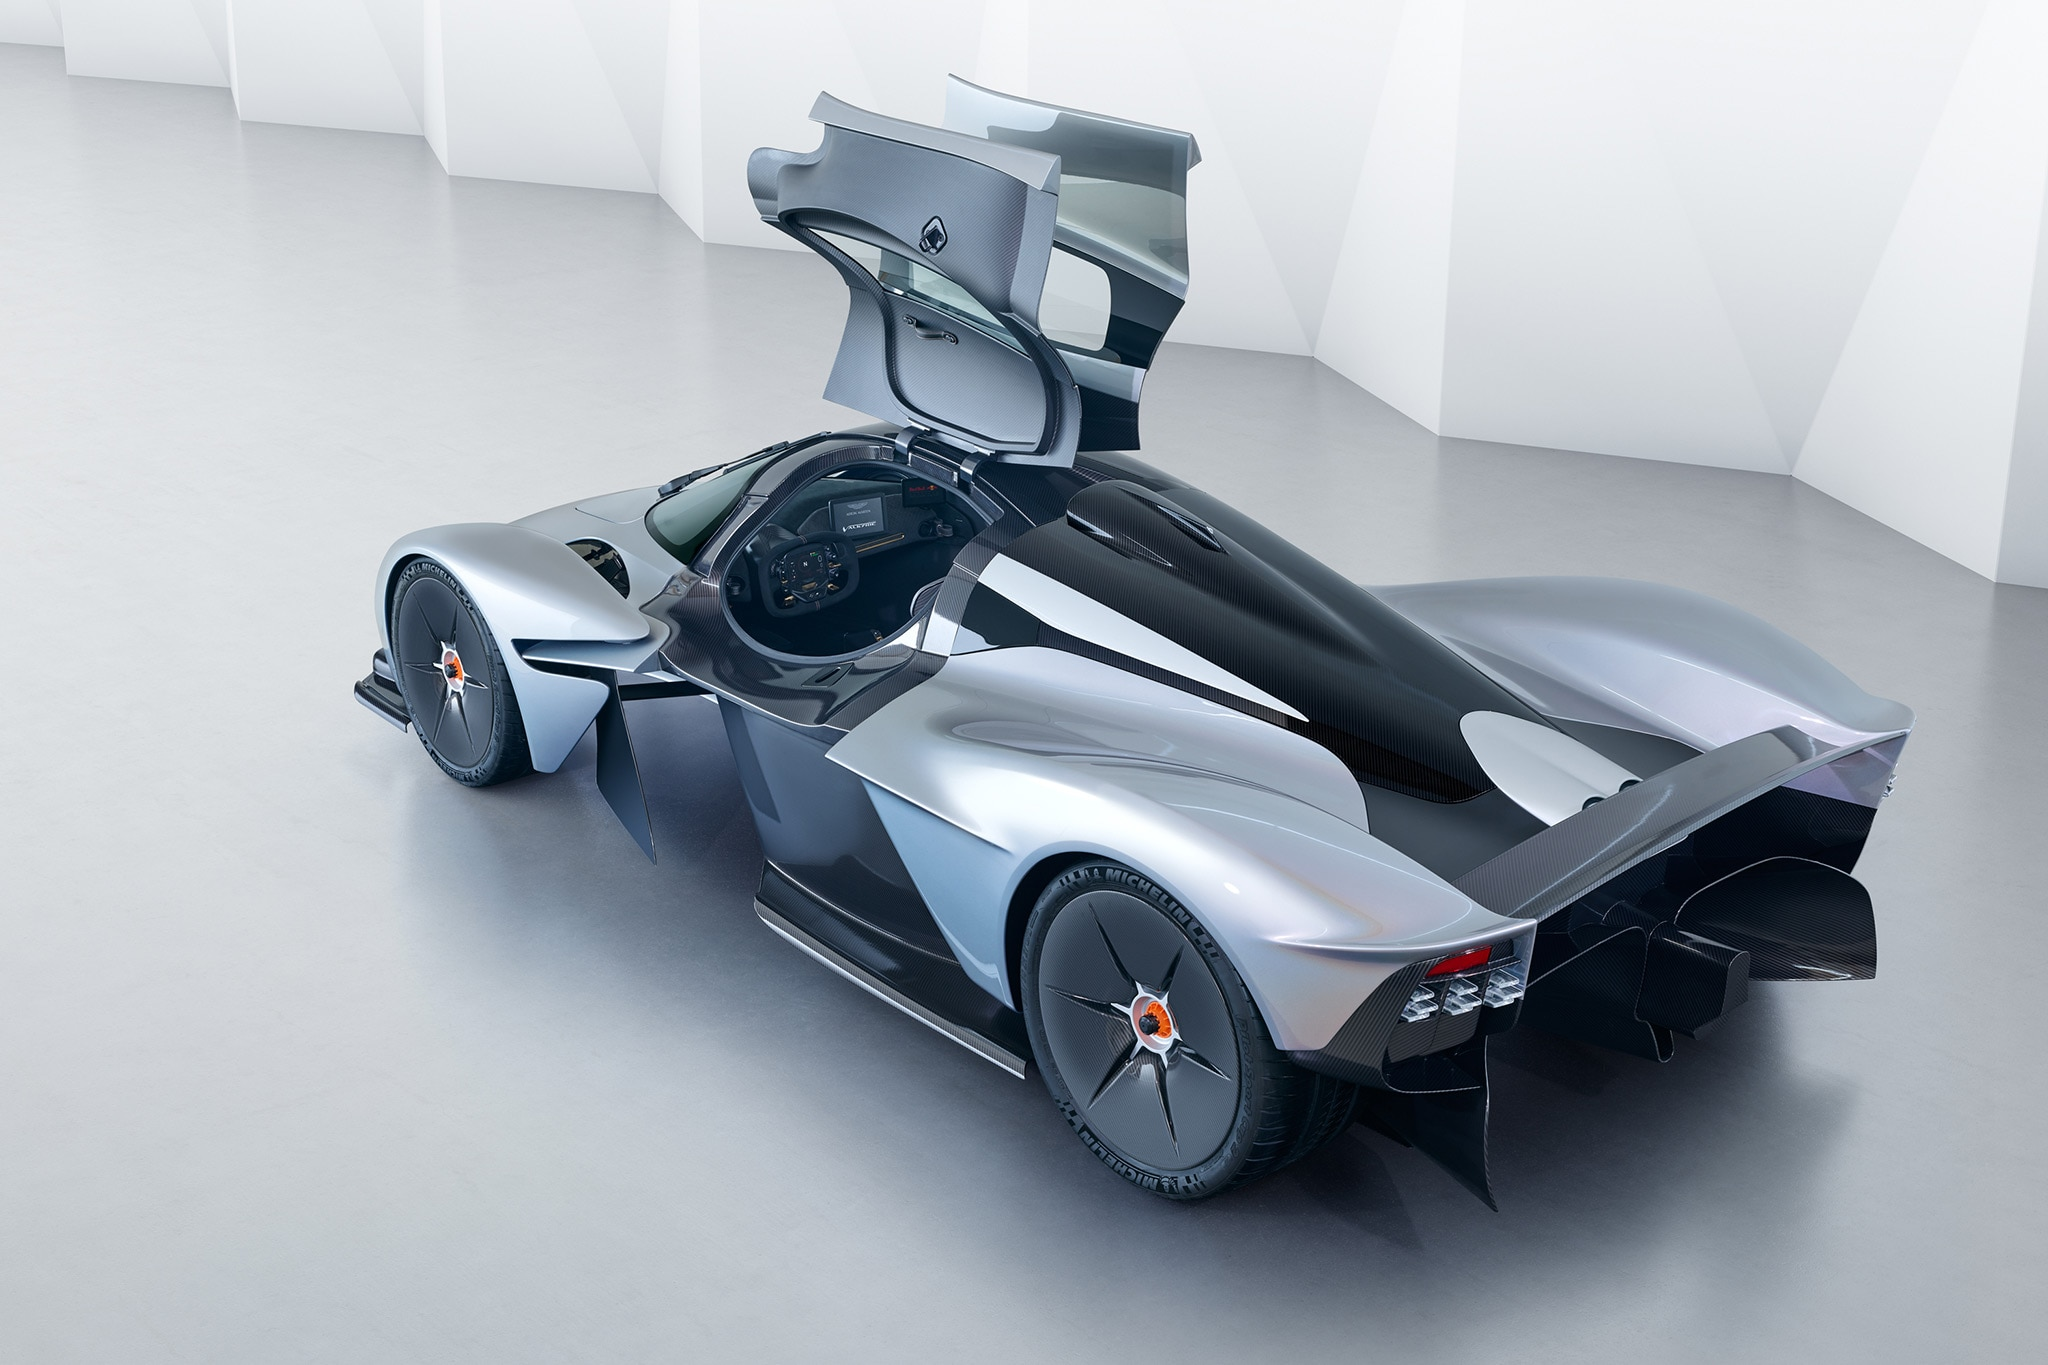 The 'near-production' Aston Martin Valkyrie is better still than the concept